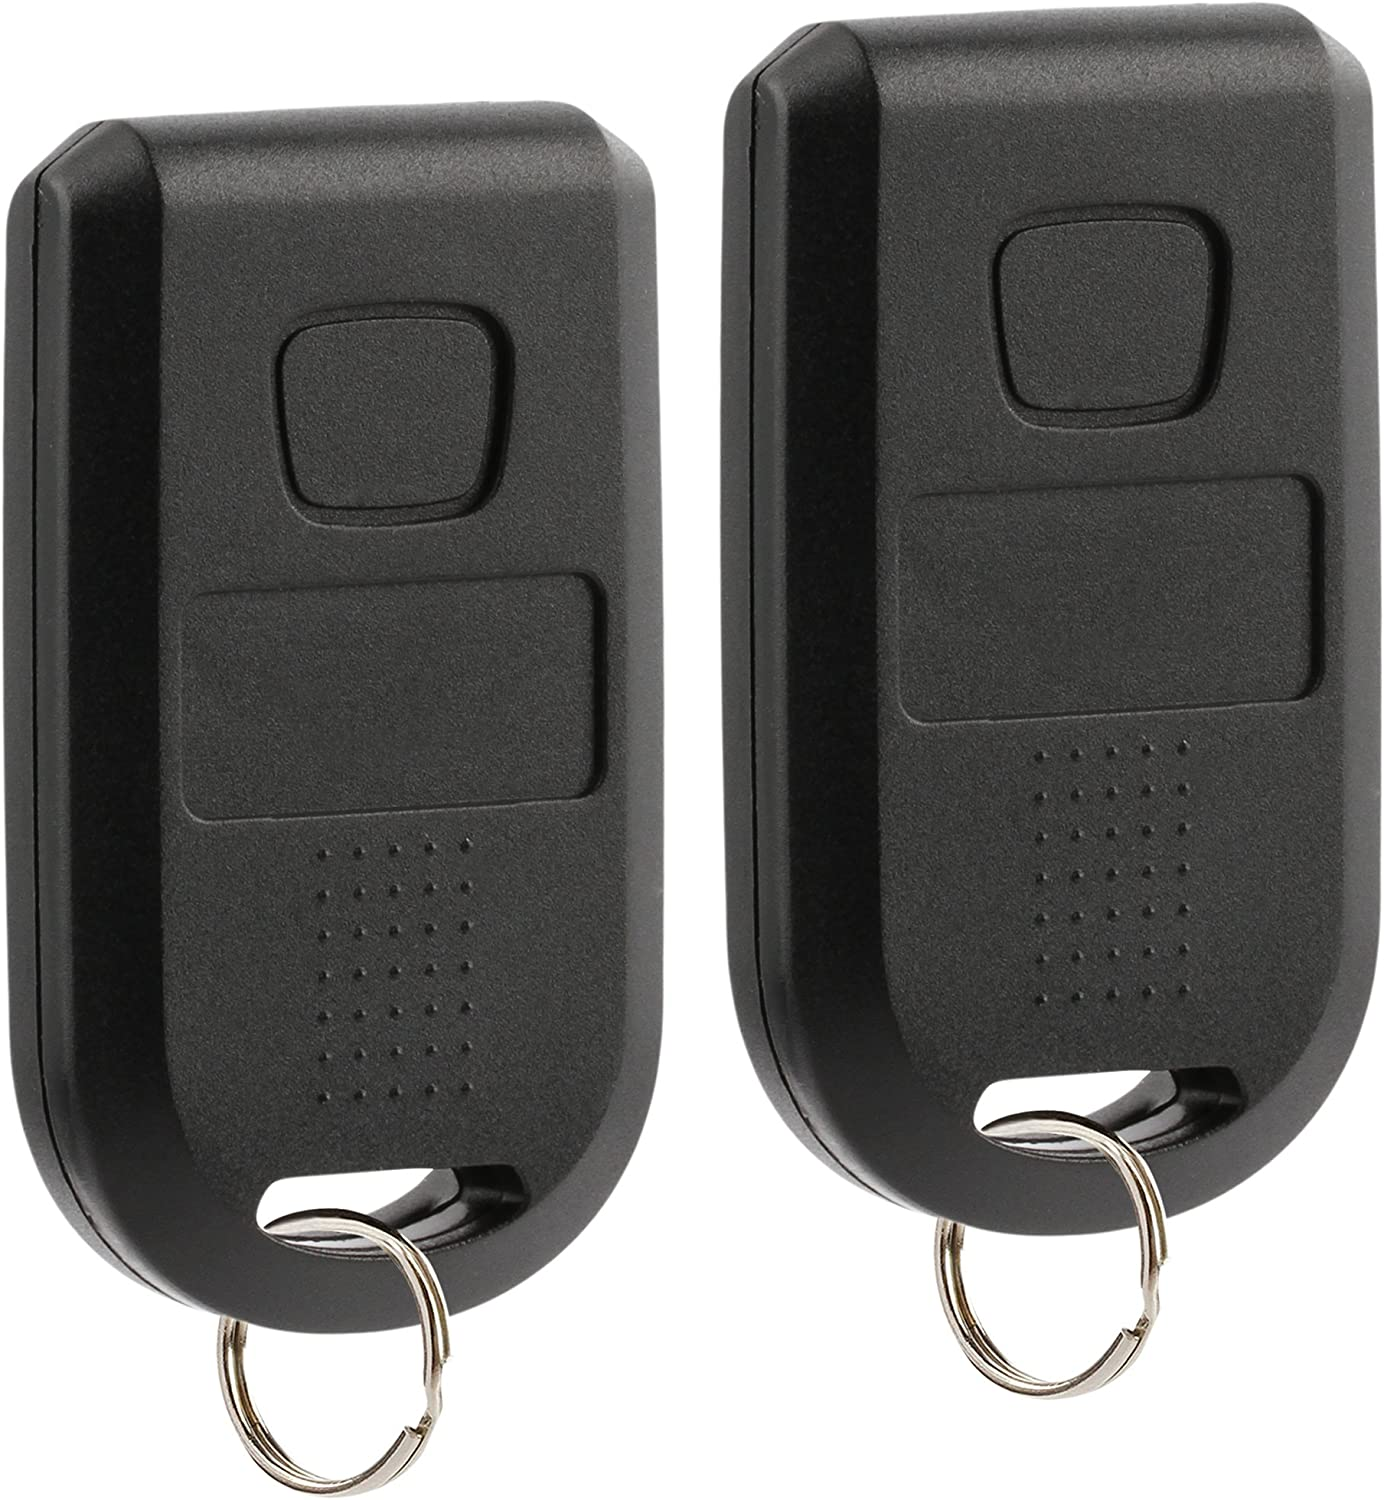 Car Key Fob Keyless Entry Remote fits 2005-2010 Honda Odyssey OUCG8D-399H-A 6-btn